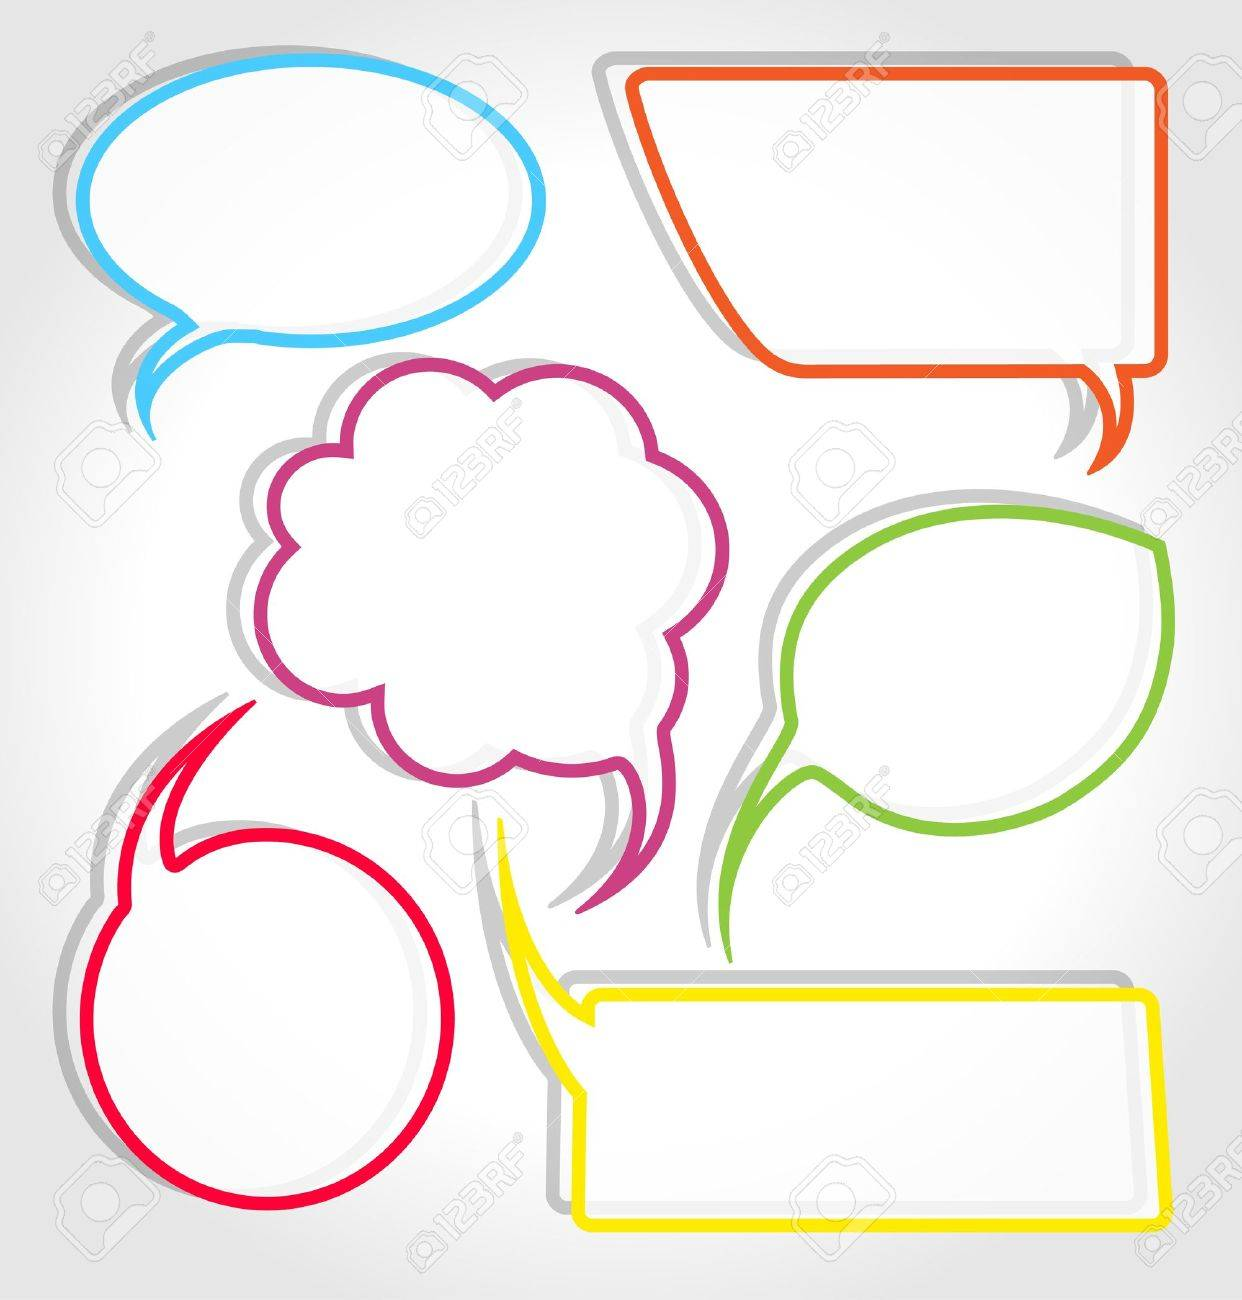 colorful speech bubble frames royalty free cliparts vectors and